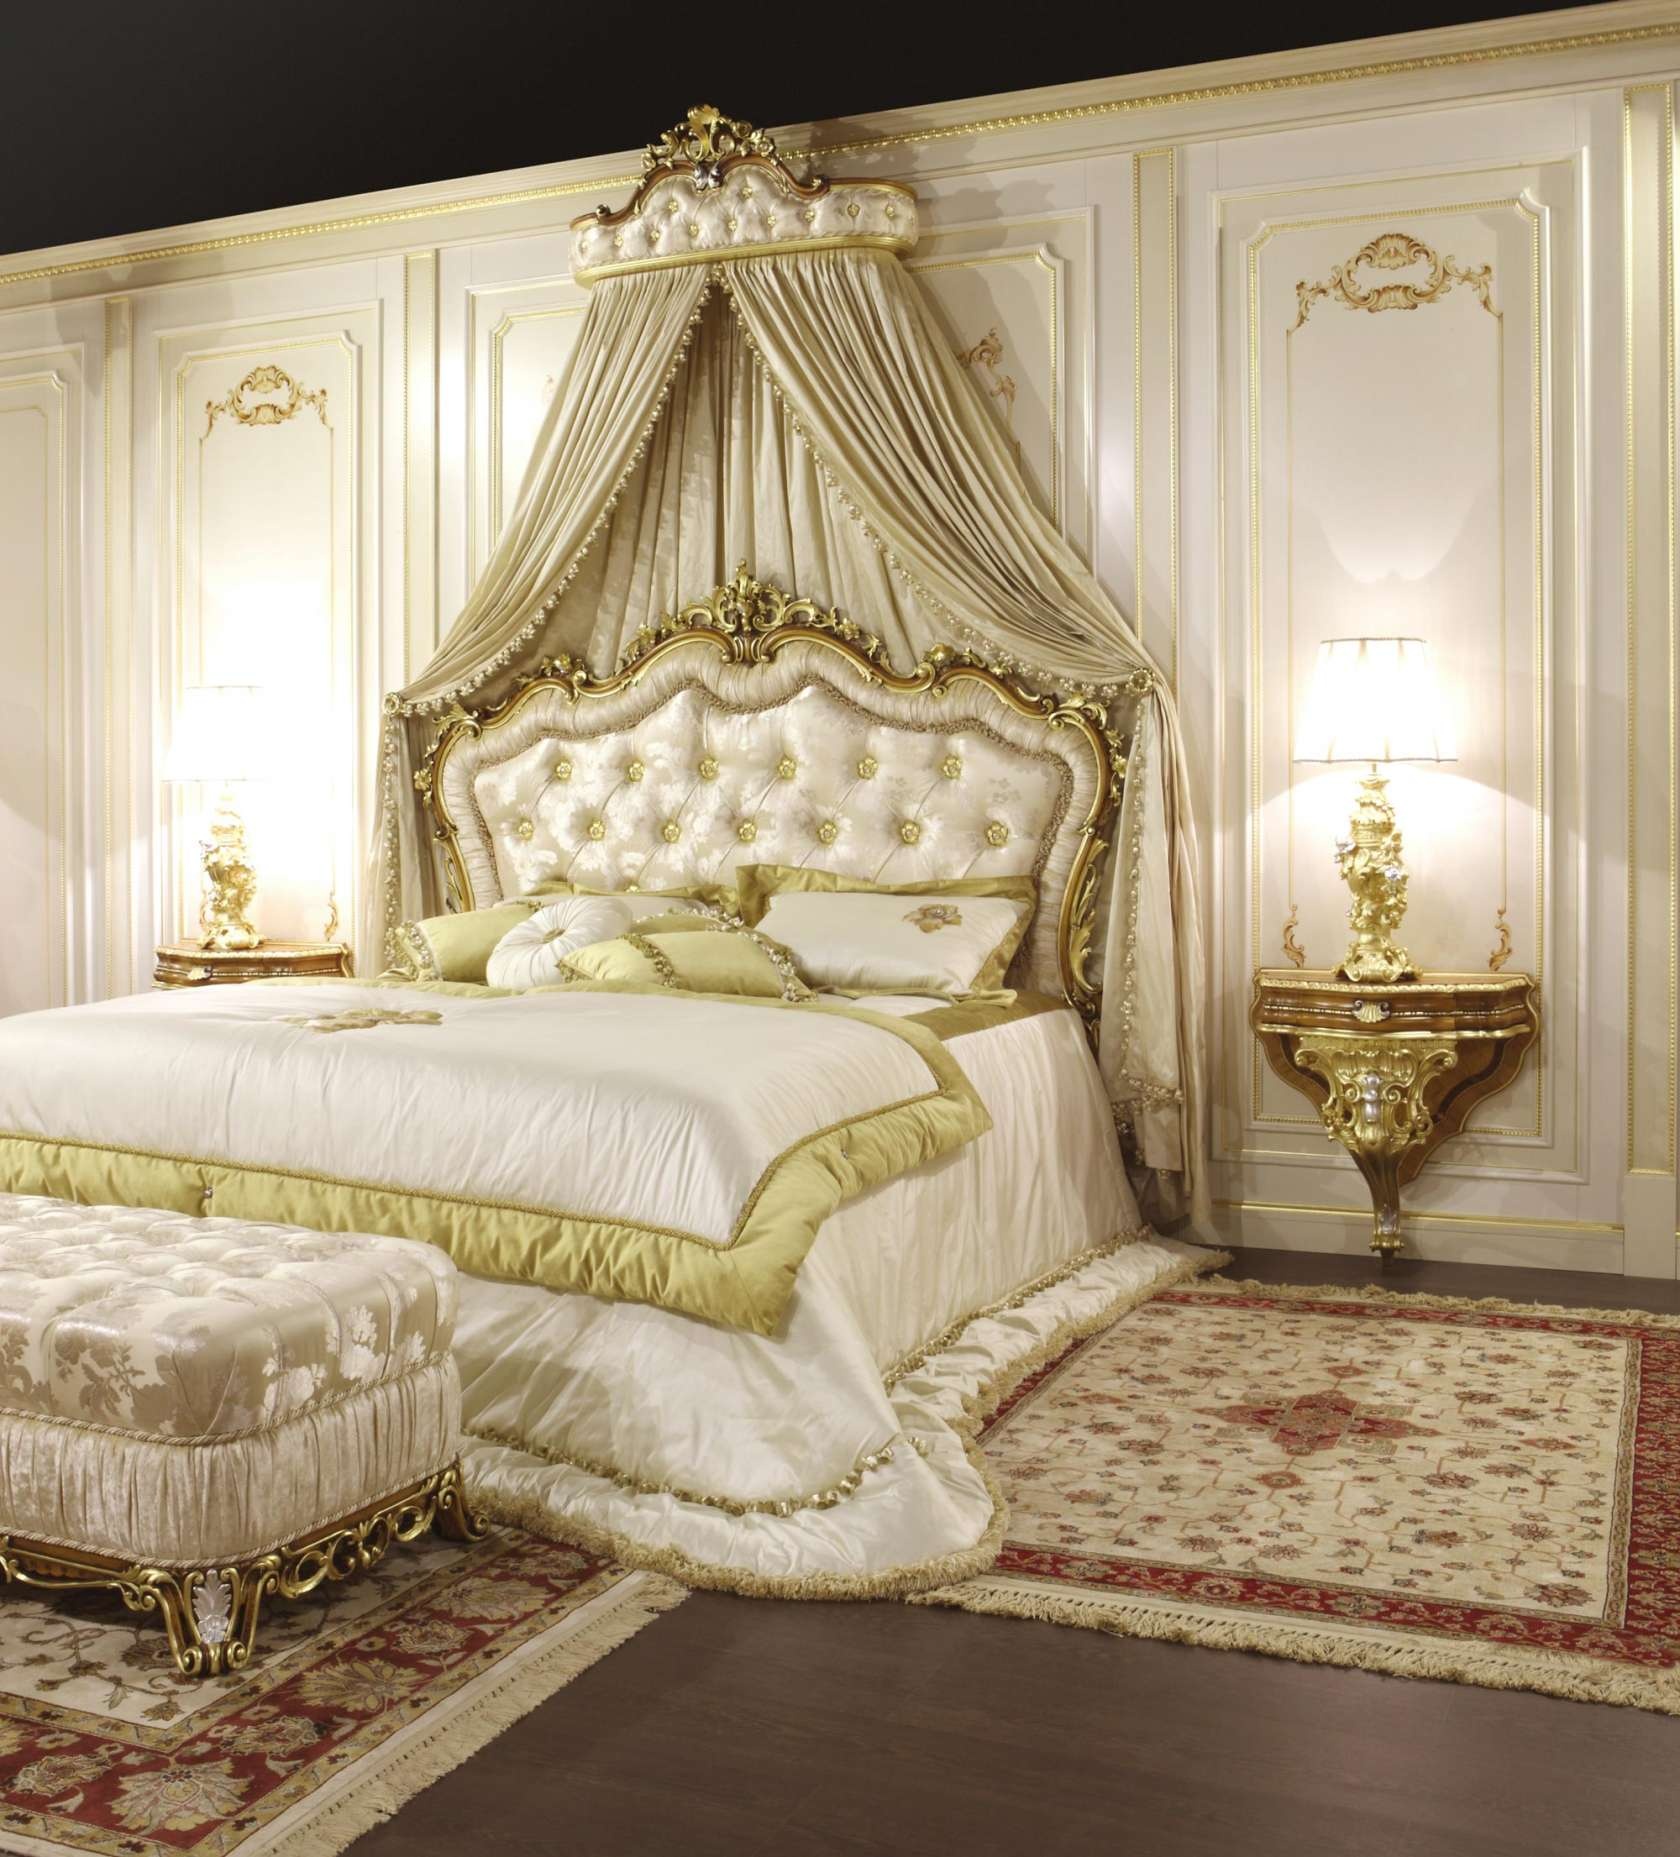 Modern Baroque Bedroom Furniture